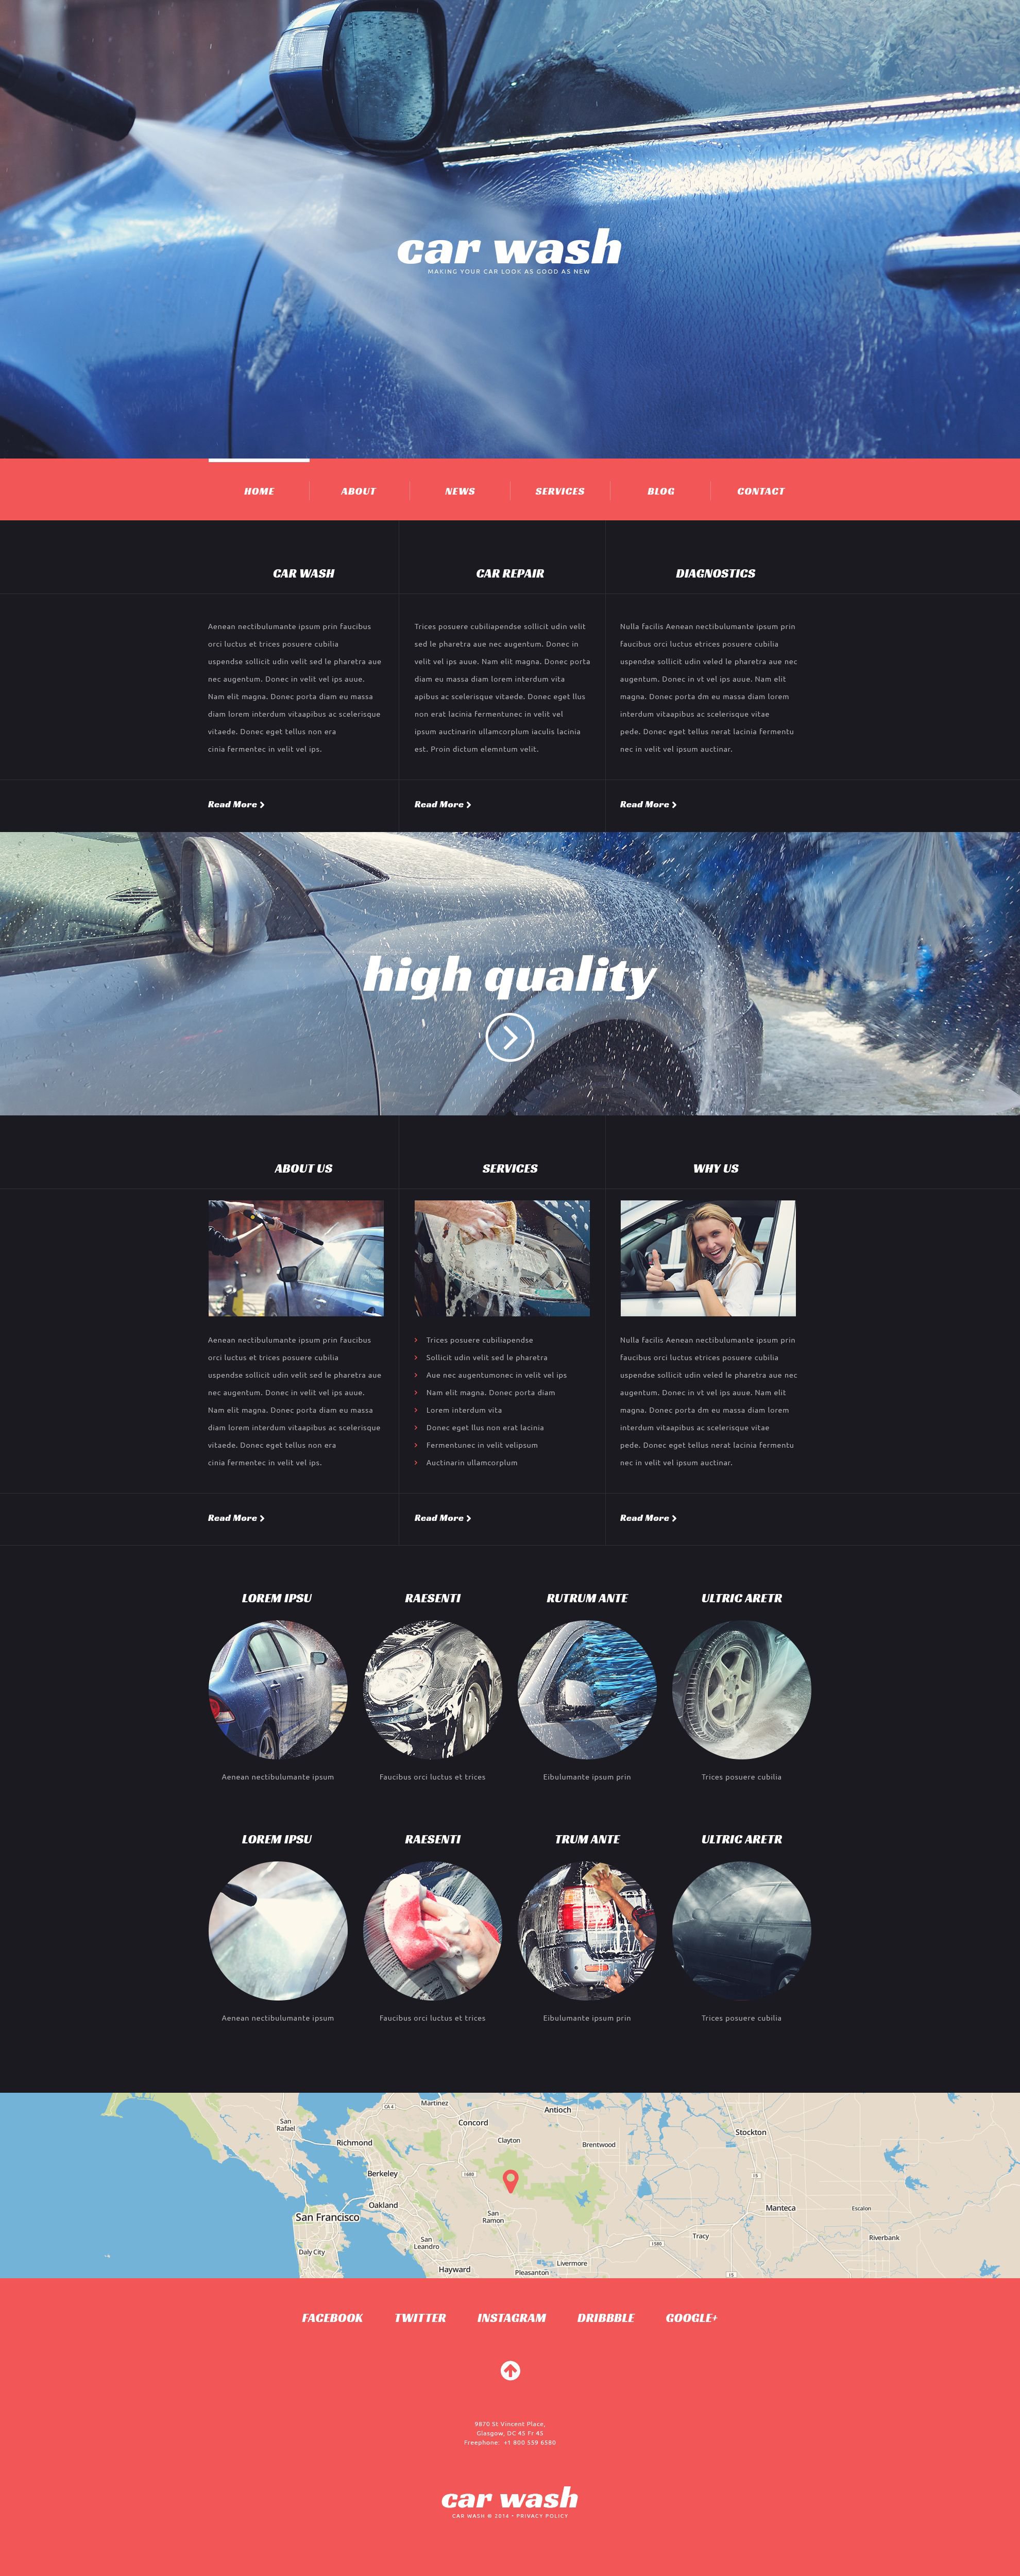 The Car Wash Center WordPress Design 54042, one of the best WordPress themes of its kind (cars, most popular), also known as car wash center WordPress template, washing WordPress template, staff WordPress template, cleaning WordPress template, oil WordPress template, lube salon WordPress template, wheel WordPress template, covers WordPress template, rinsing WordPress template, water WordPress template, drying WordPress template, soap WordPress template, polish WordPress template, chassis WordPress template, dirty WordPress template, dashboard WordPress template, hoovering WordPress template, seats WordPress template, cleaning WordPress template, brushes WordPress template, service WordPress template, coupons WordPress template, fund-raising and related with car wash center, washing, staff, cleaning, oil, lube salon, wheel, covers, rinsing, water, drying, soap, polish, chassis, dirty, dashboard, hoovering, seats, cleaning, brushes, service, coupons, fund-raising, etc.